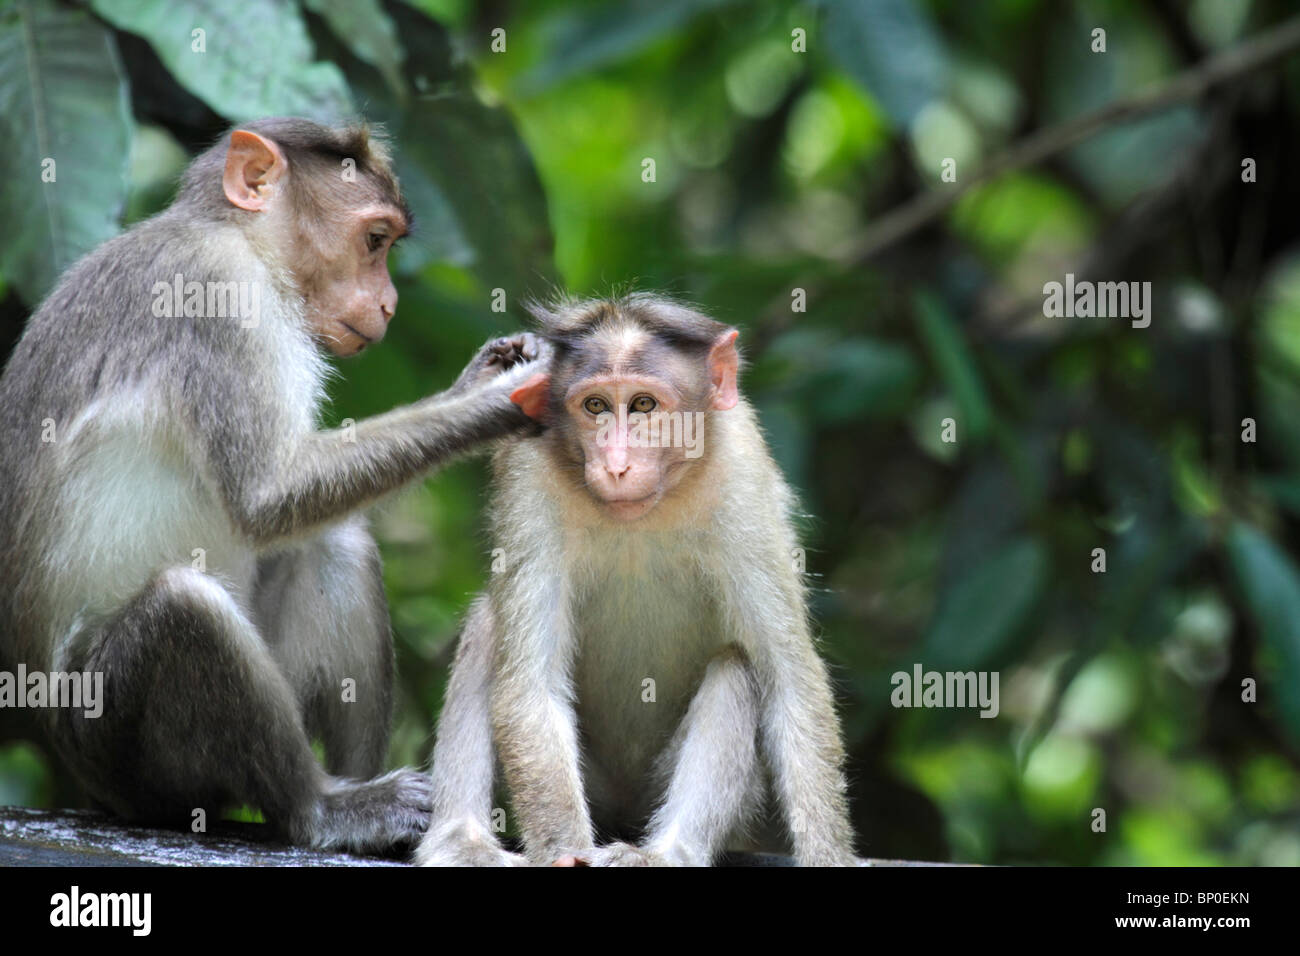 India, Kerala, Periyar National Park. Bonnet macaques grooming. - Stock Image